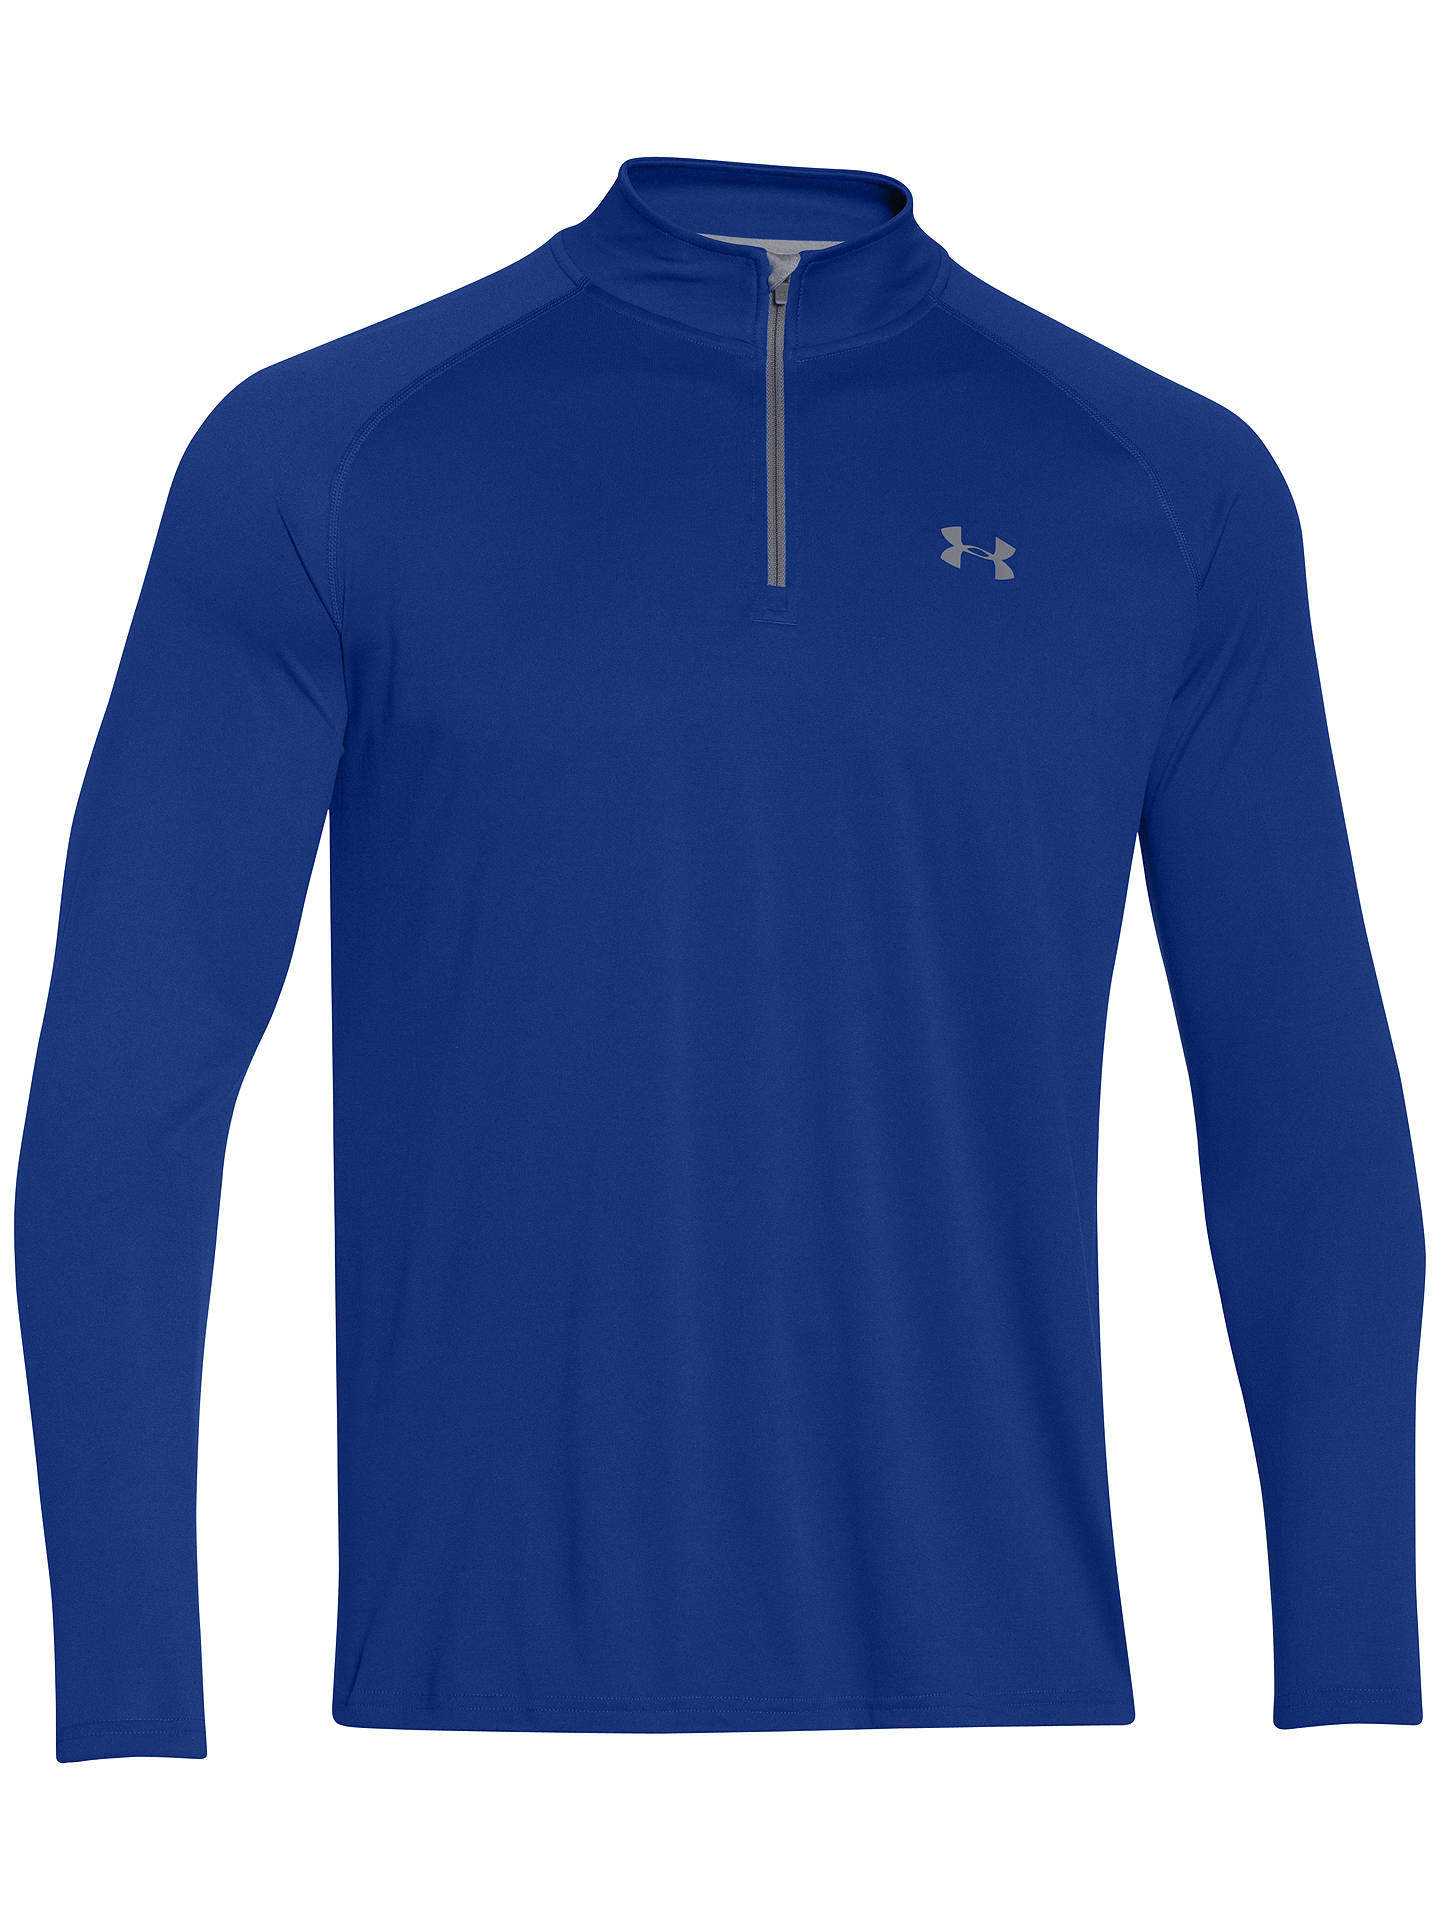 12c506c19 Under Armour Tech 1/4 Zip Long Sleeve Top, Royal Blue at John Lewis ...